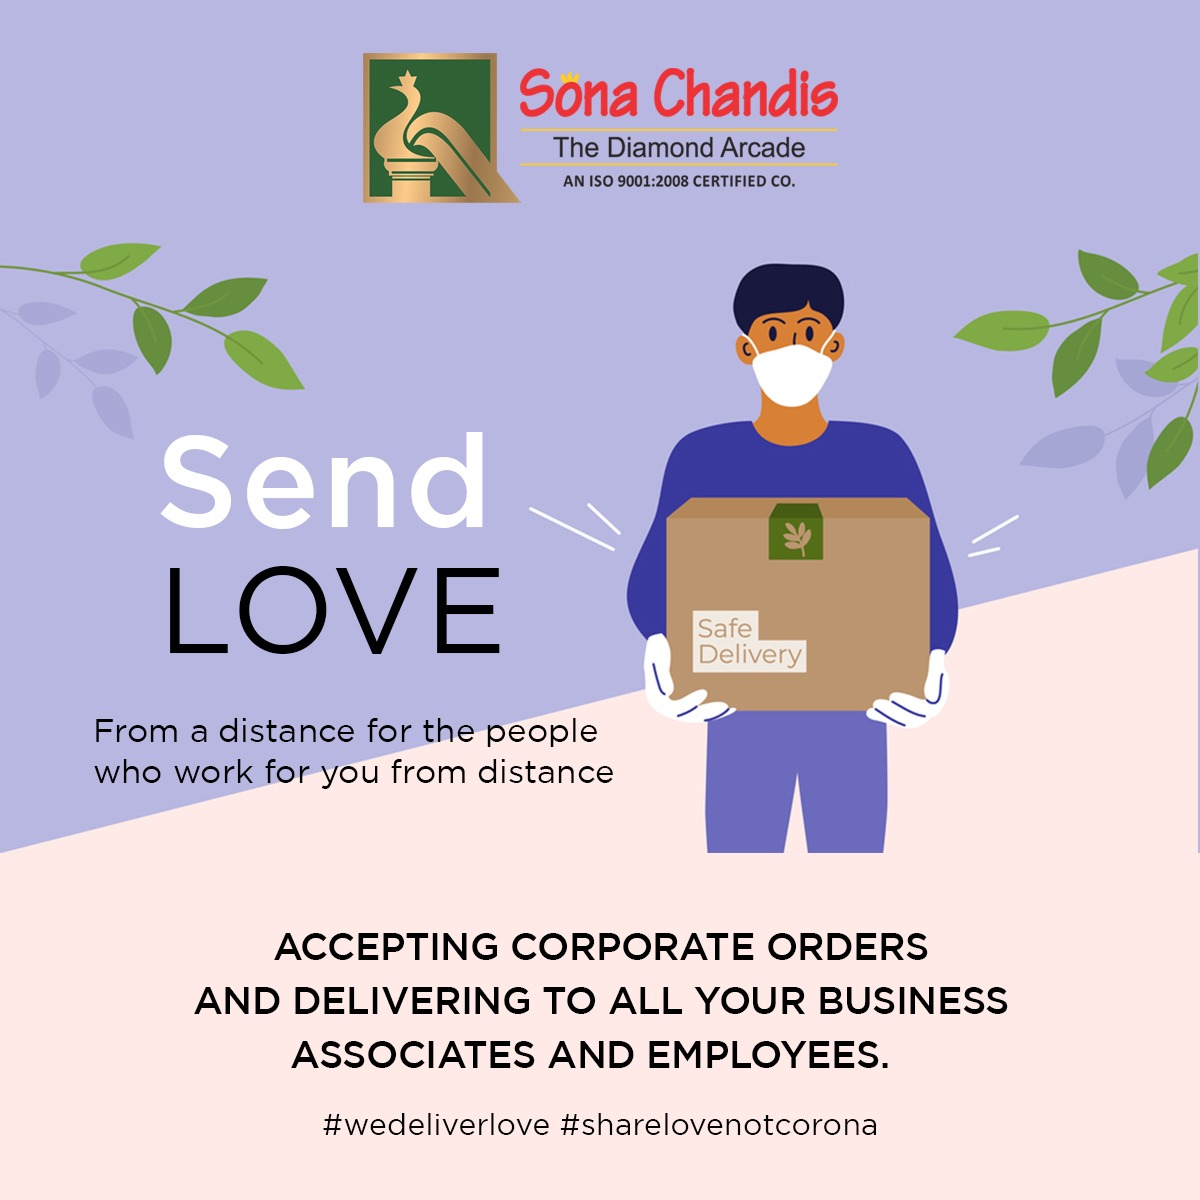 Sona Chandi jewellers reaches out to people this festive season---right till their doorsteps